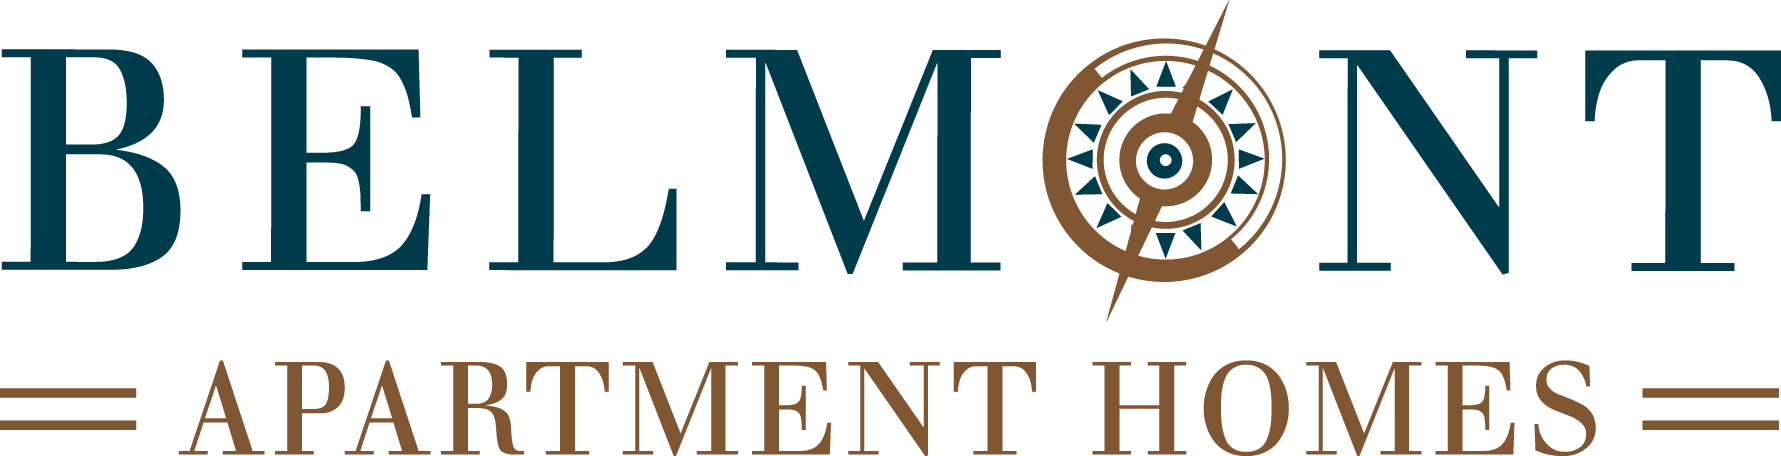 Belmont Village Apartments logo